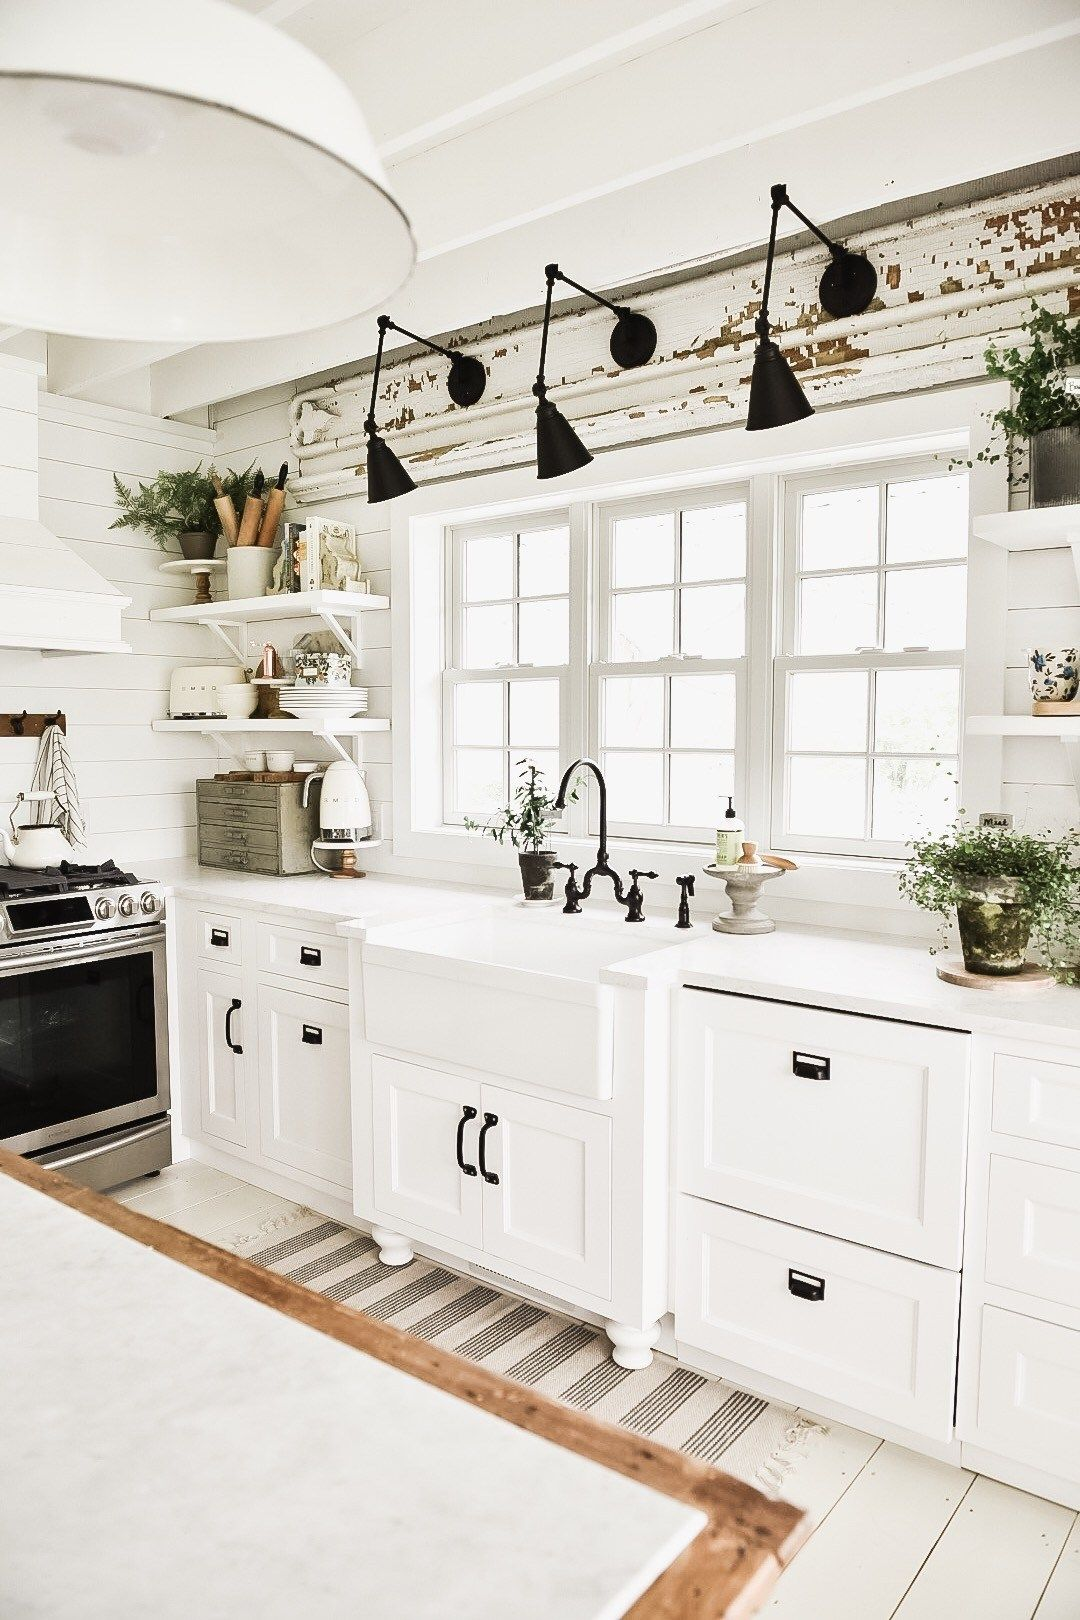 New Kitchen Wall Sconces Over The Sink Home Home Decor